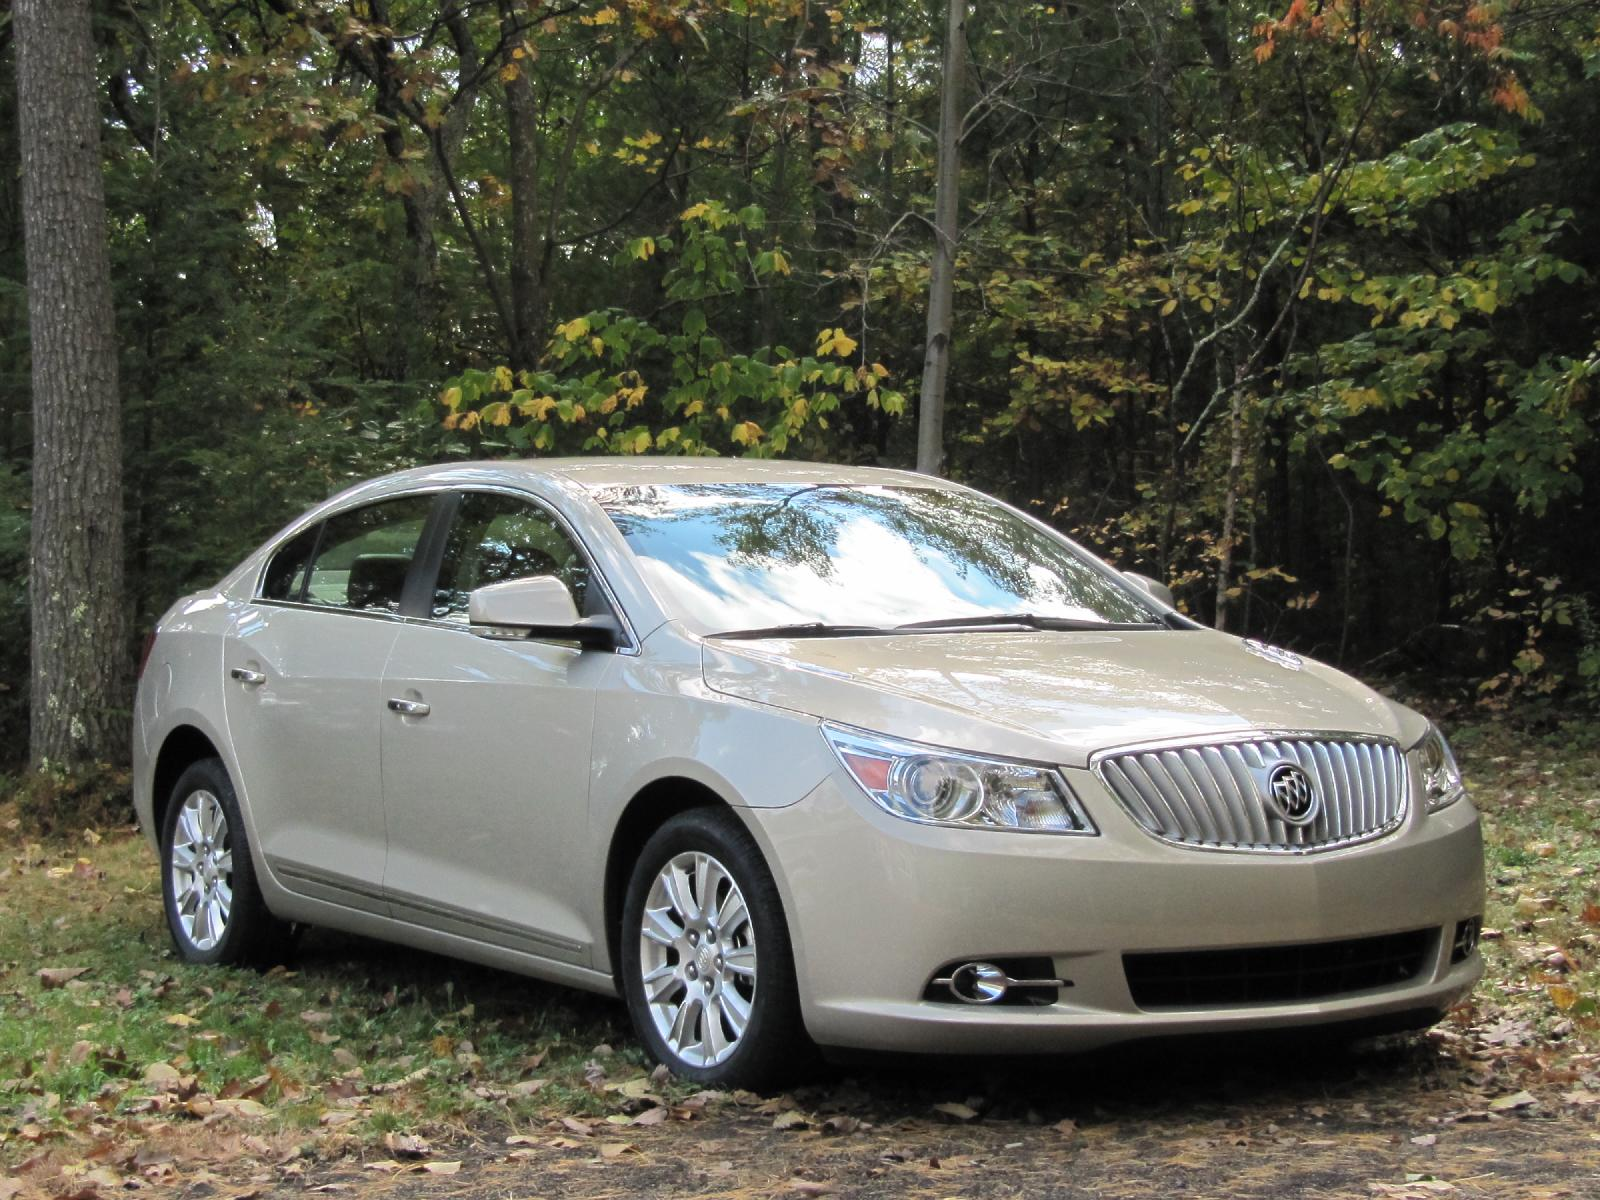 2012 Buick Lacrosse With Eassist Mild Hybrid Weekend Drive